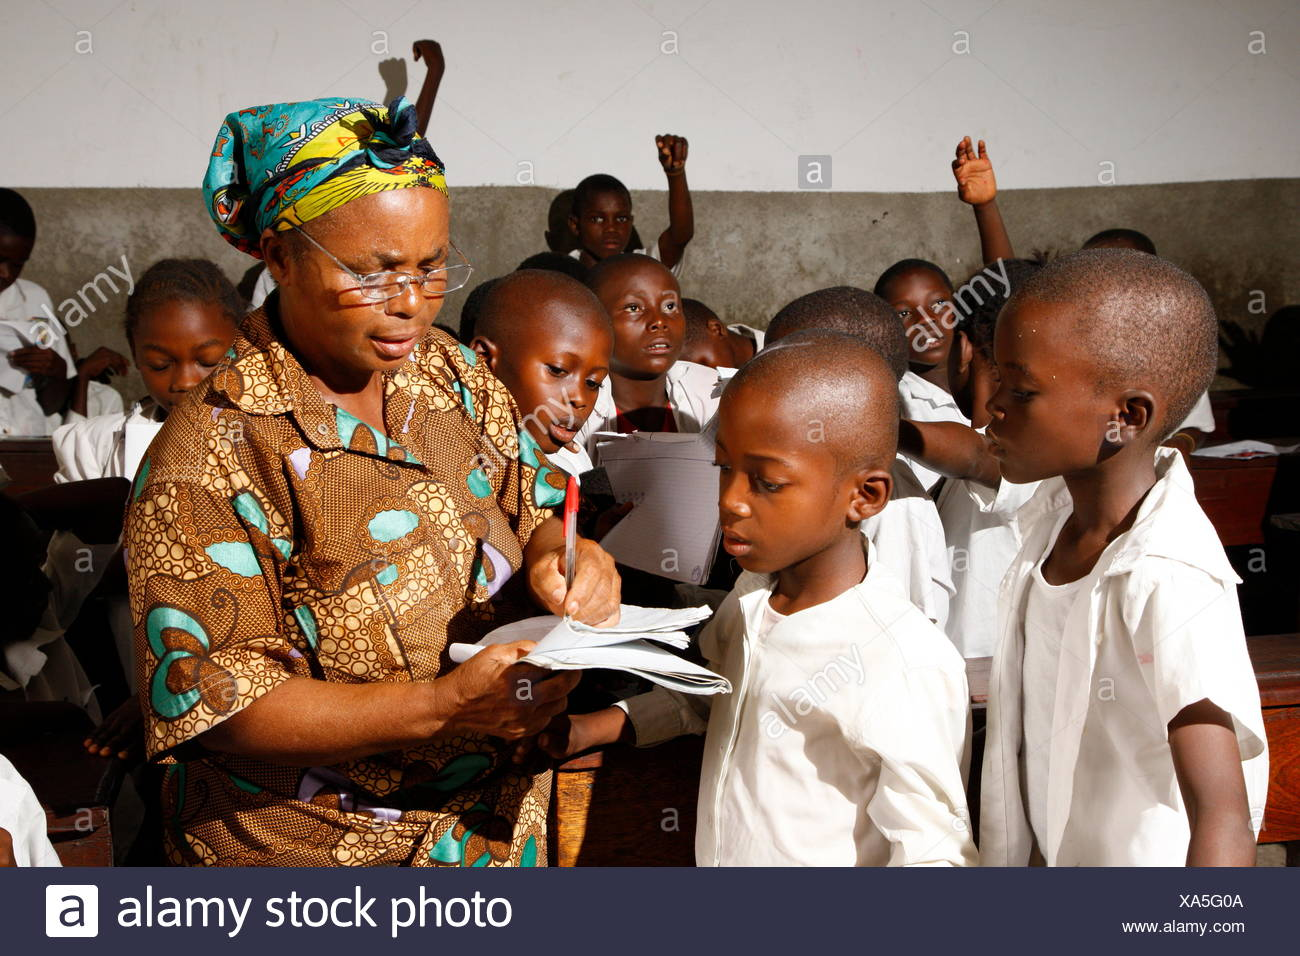 Teacher and school children in school uniform during class, Kinshasa, Congo Stock Photo